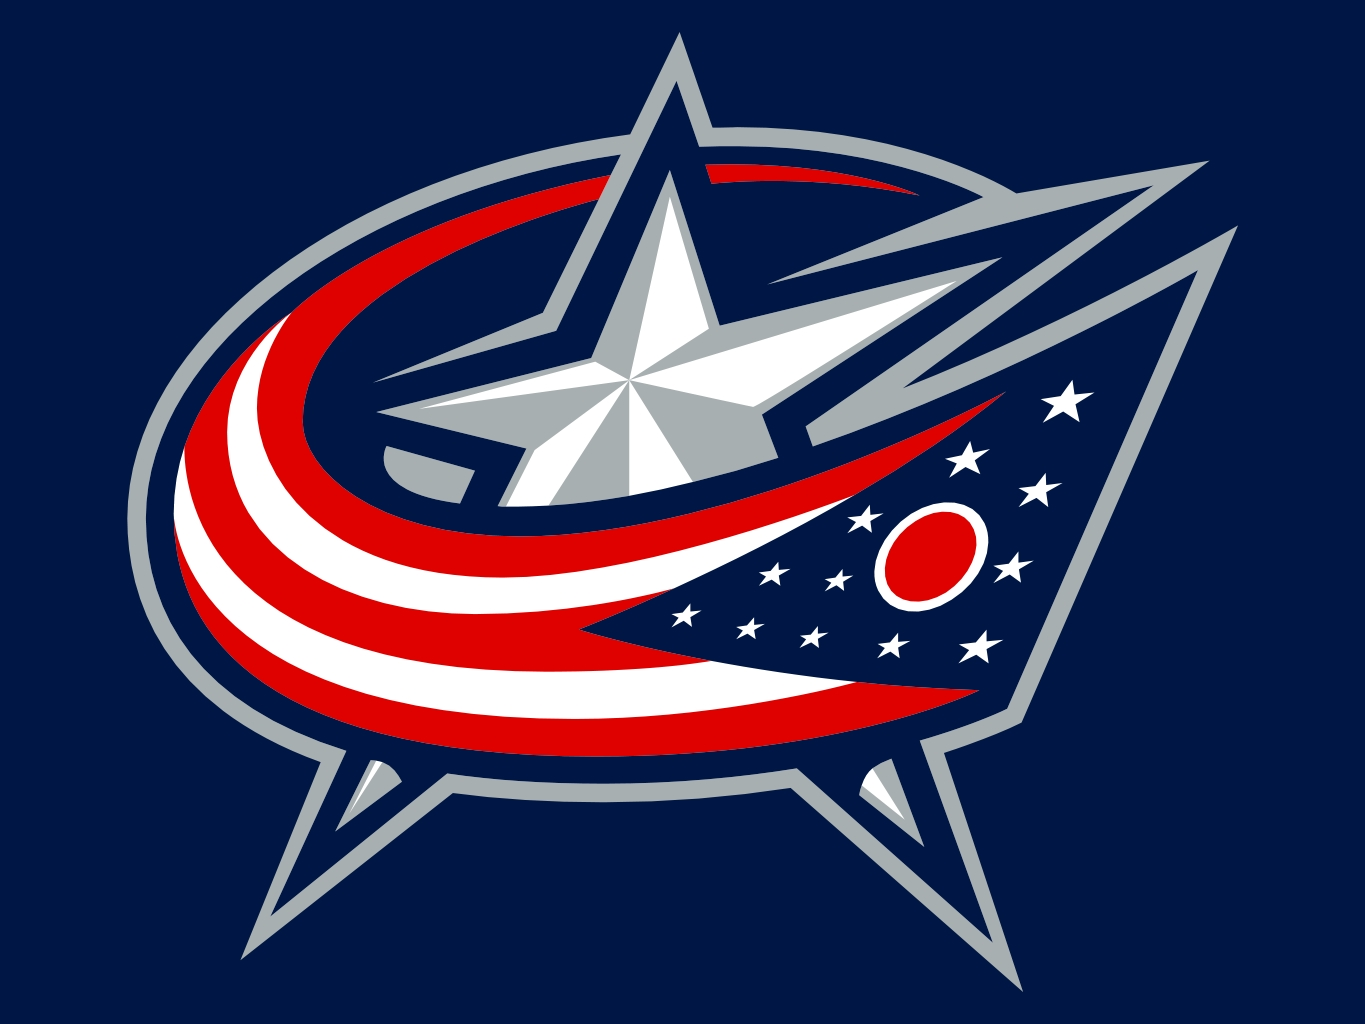 Blue Jackets Archives - NEO Sports Insiders